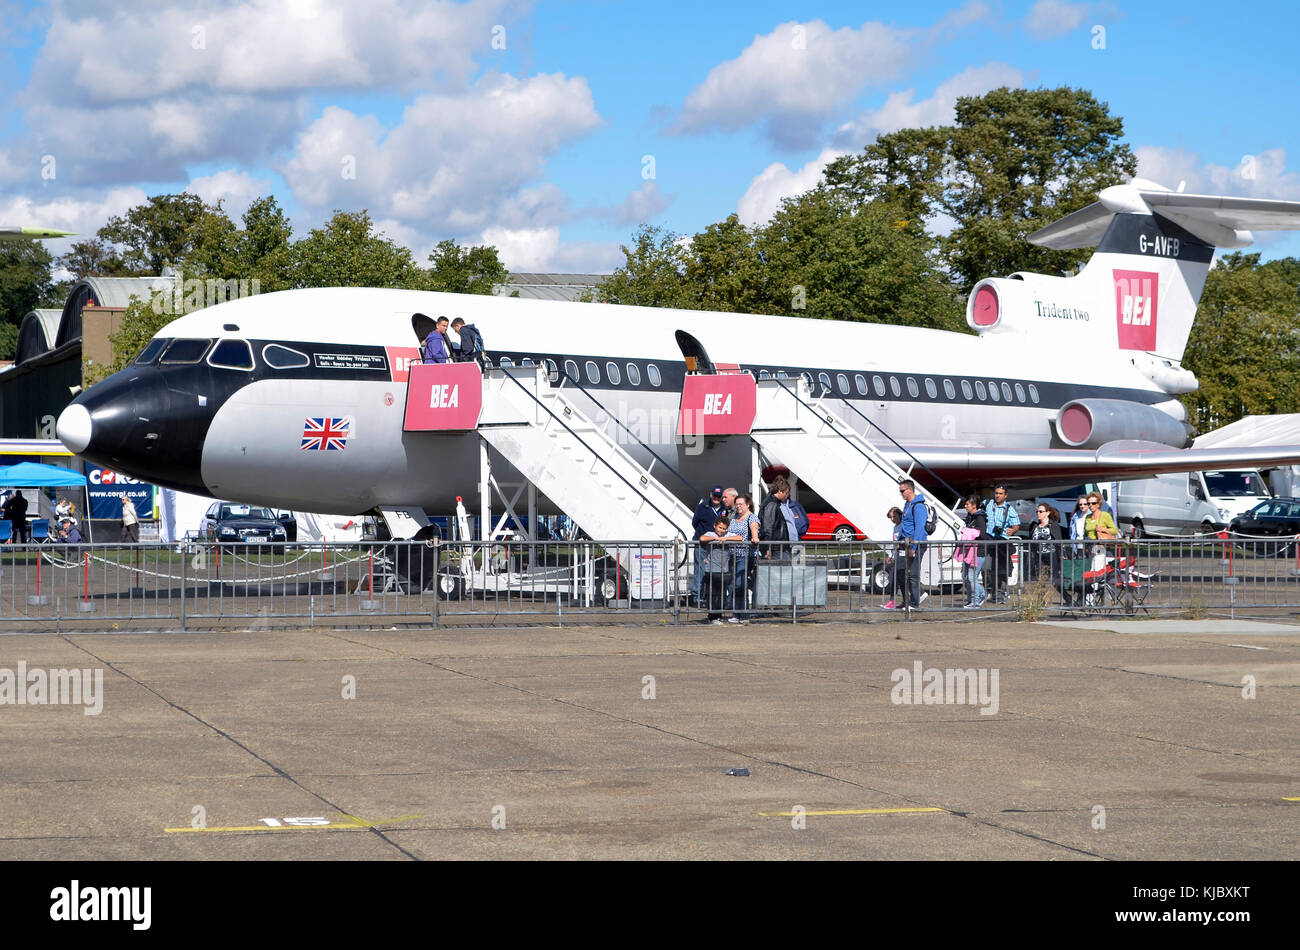 Hawker Siddeley Trident 2E, BEA, Duxford, UK. The Trident flew with British European Airways throughout much of - Stock Image